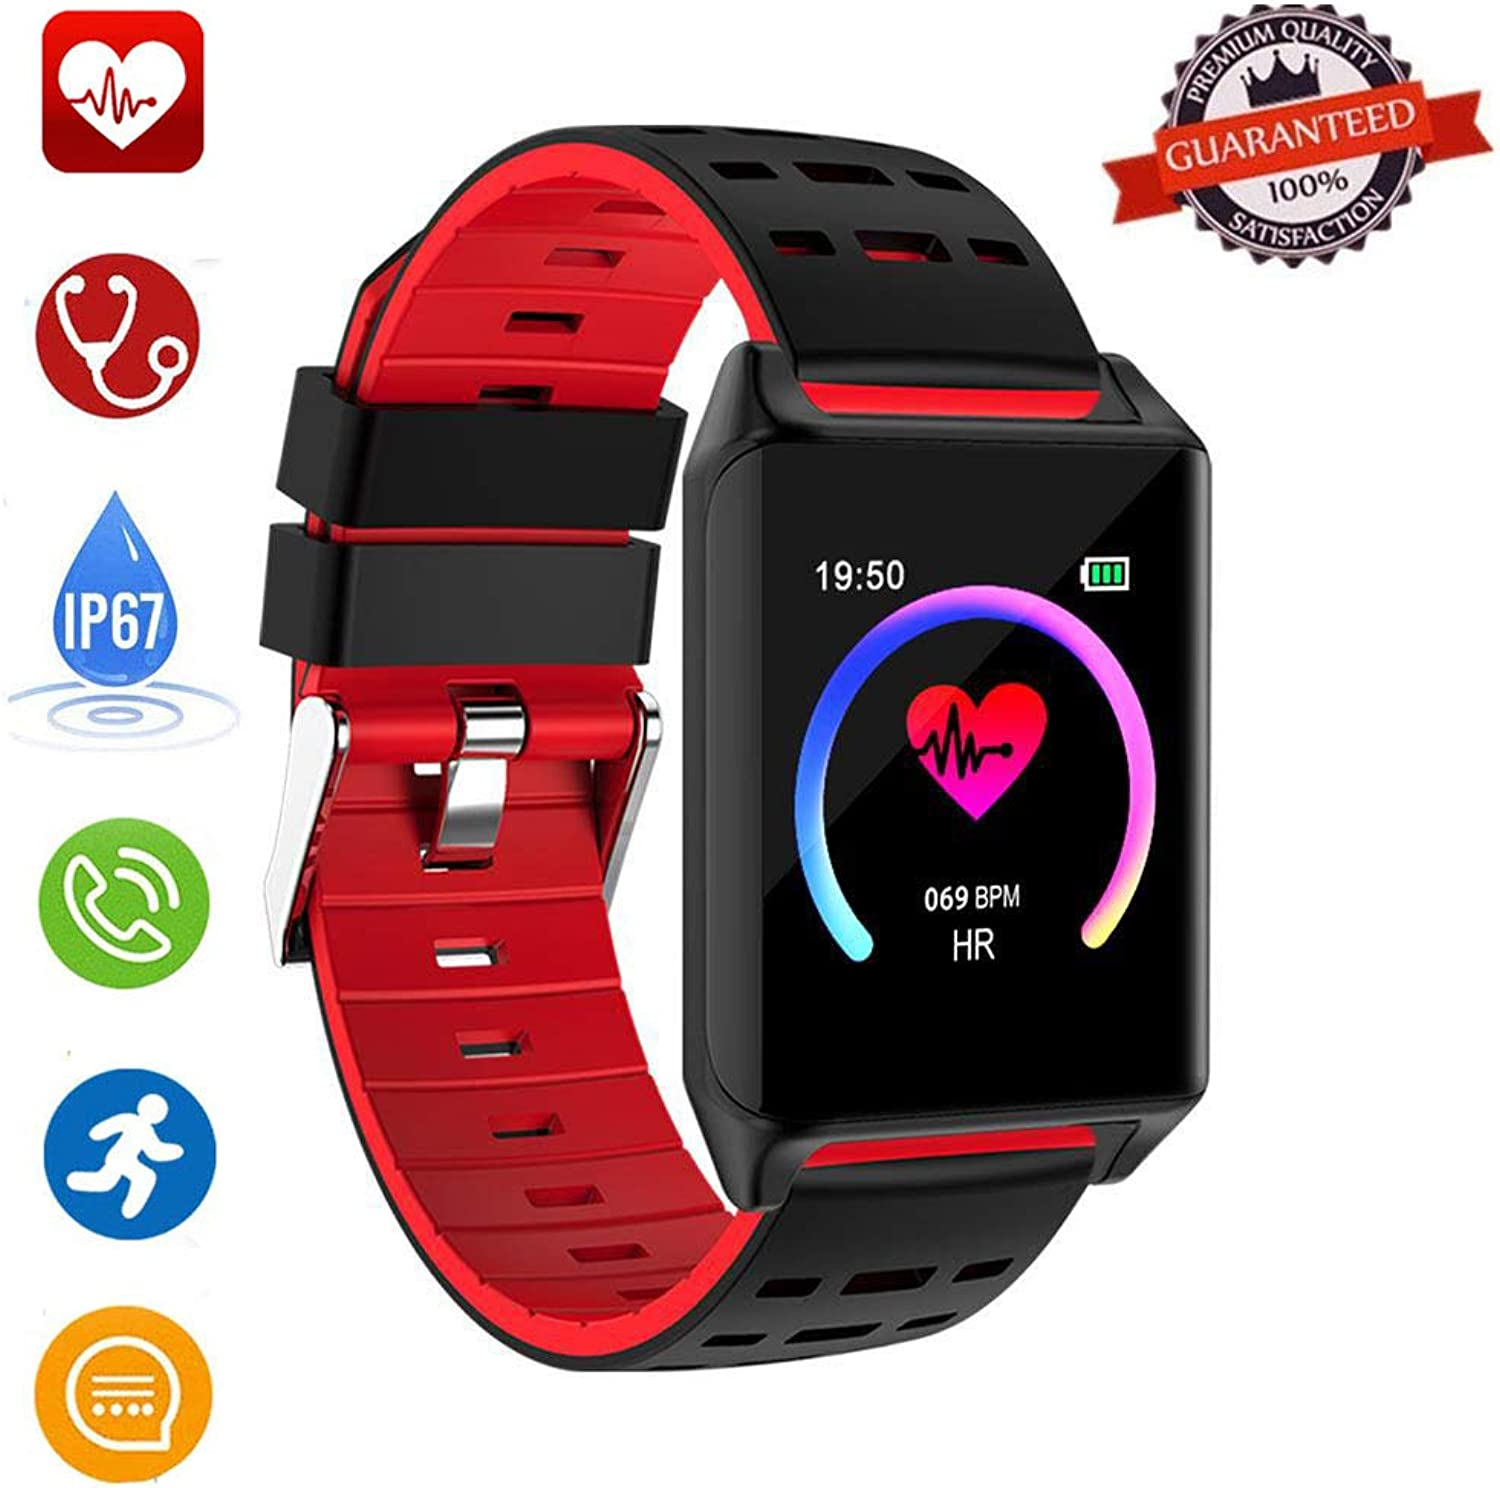 Waterproof Fitness Tracker Smart Watch, MOGOI AK11 1.22  color Screen blueetooth Smart Activity Tracker Watch with Blood Pressure Heart Rate Step Calorie Sleep Monitor for Android iOS